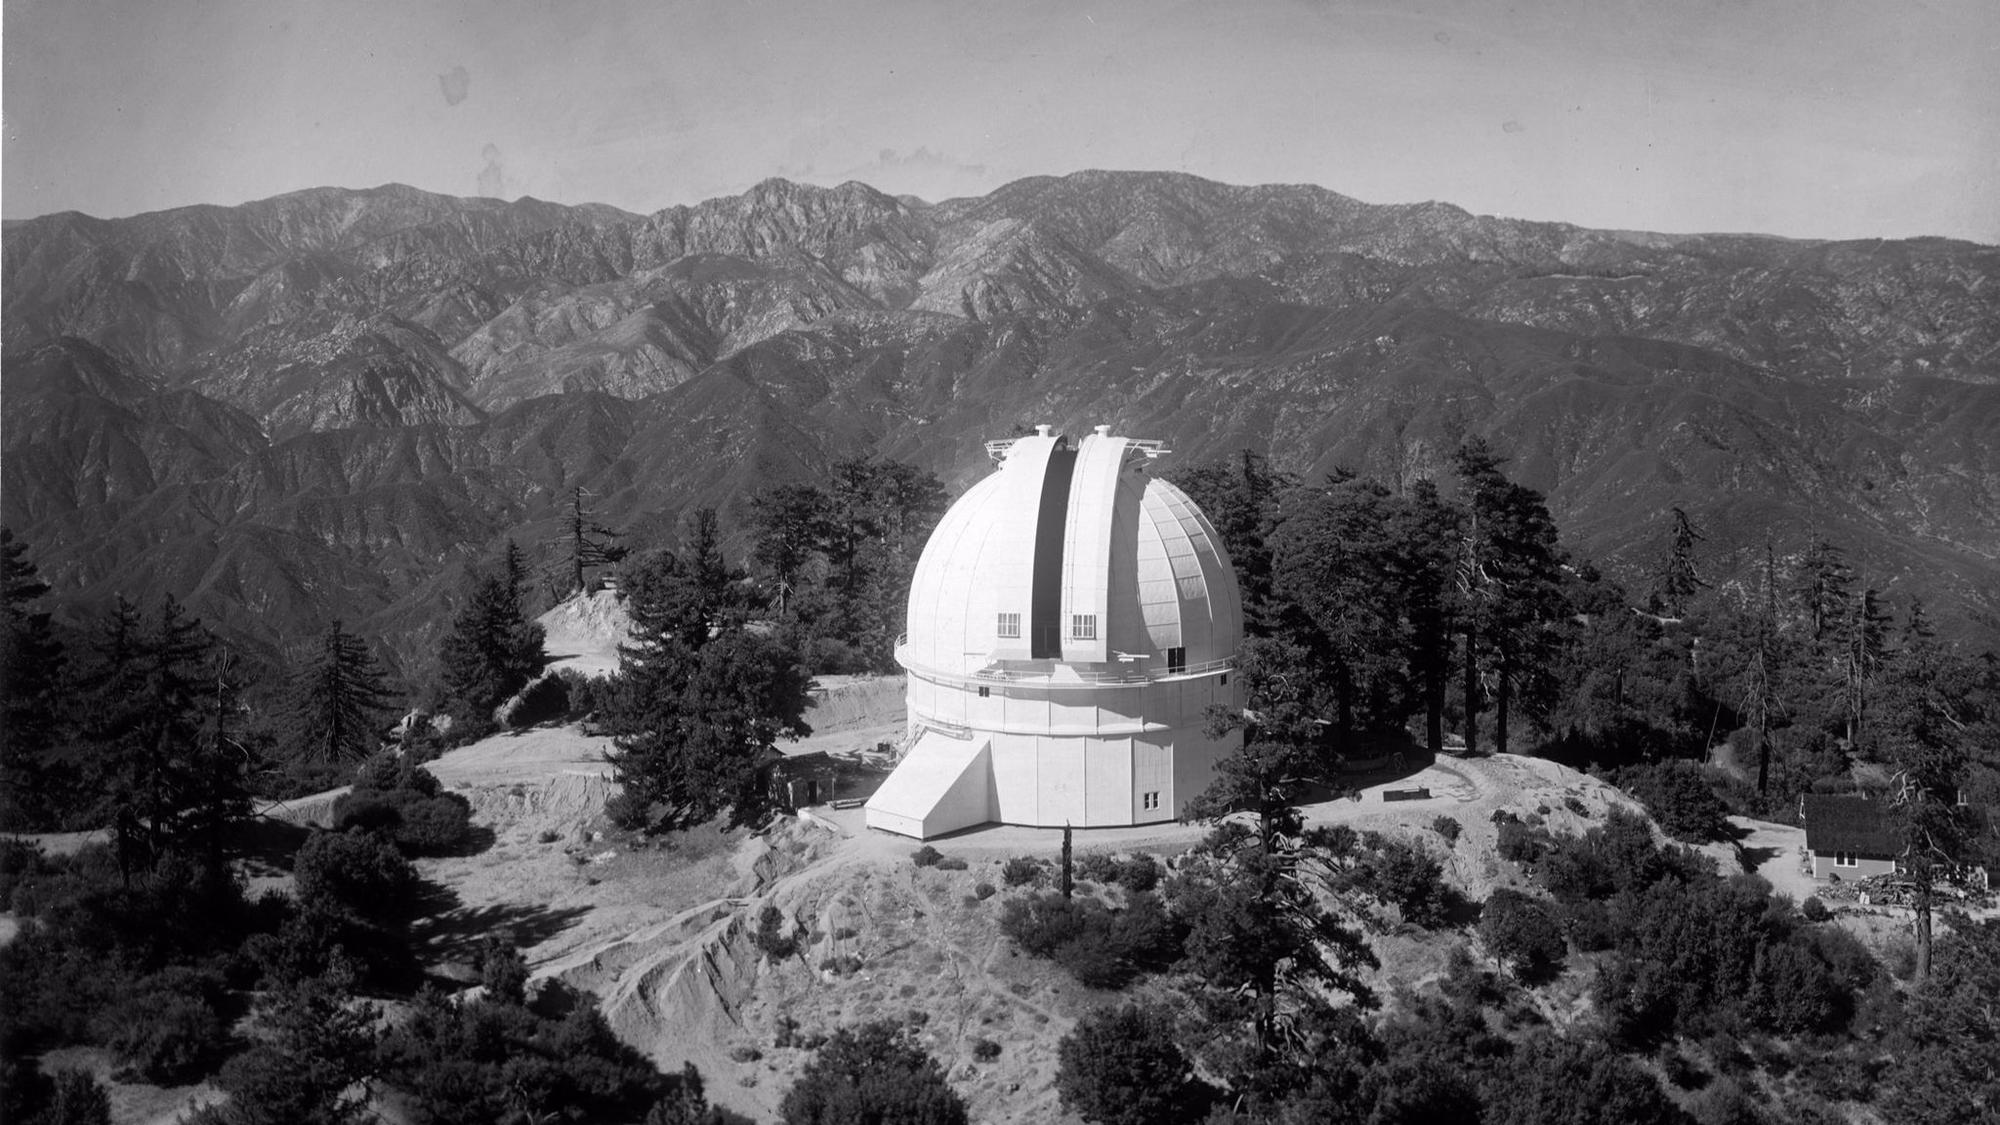 The completed 100-inch telescope dome at Mt. Wilson Observatory, as seen from the 150-foot tower telescope in 1916.